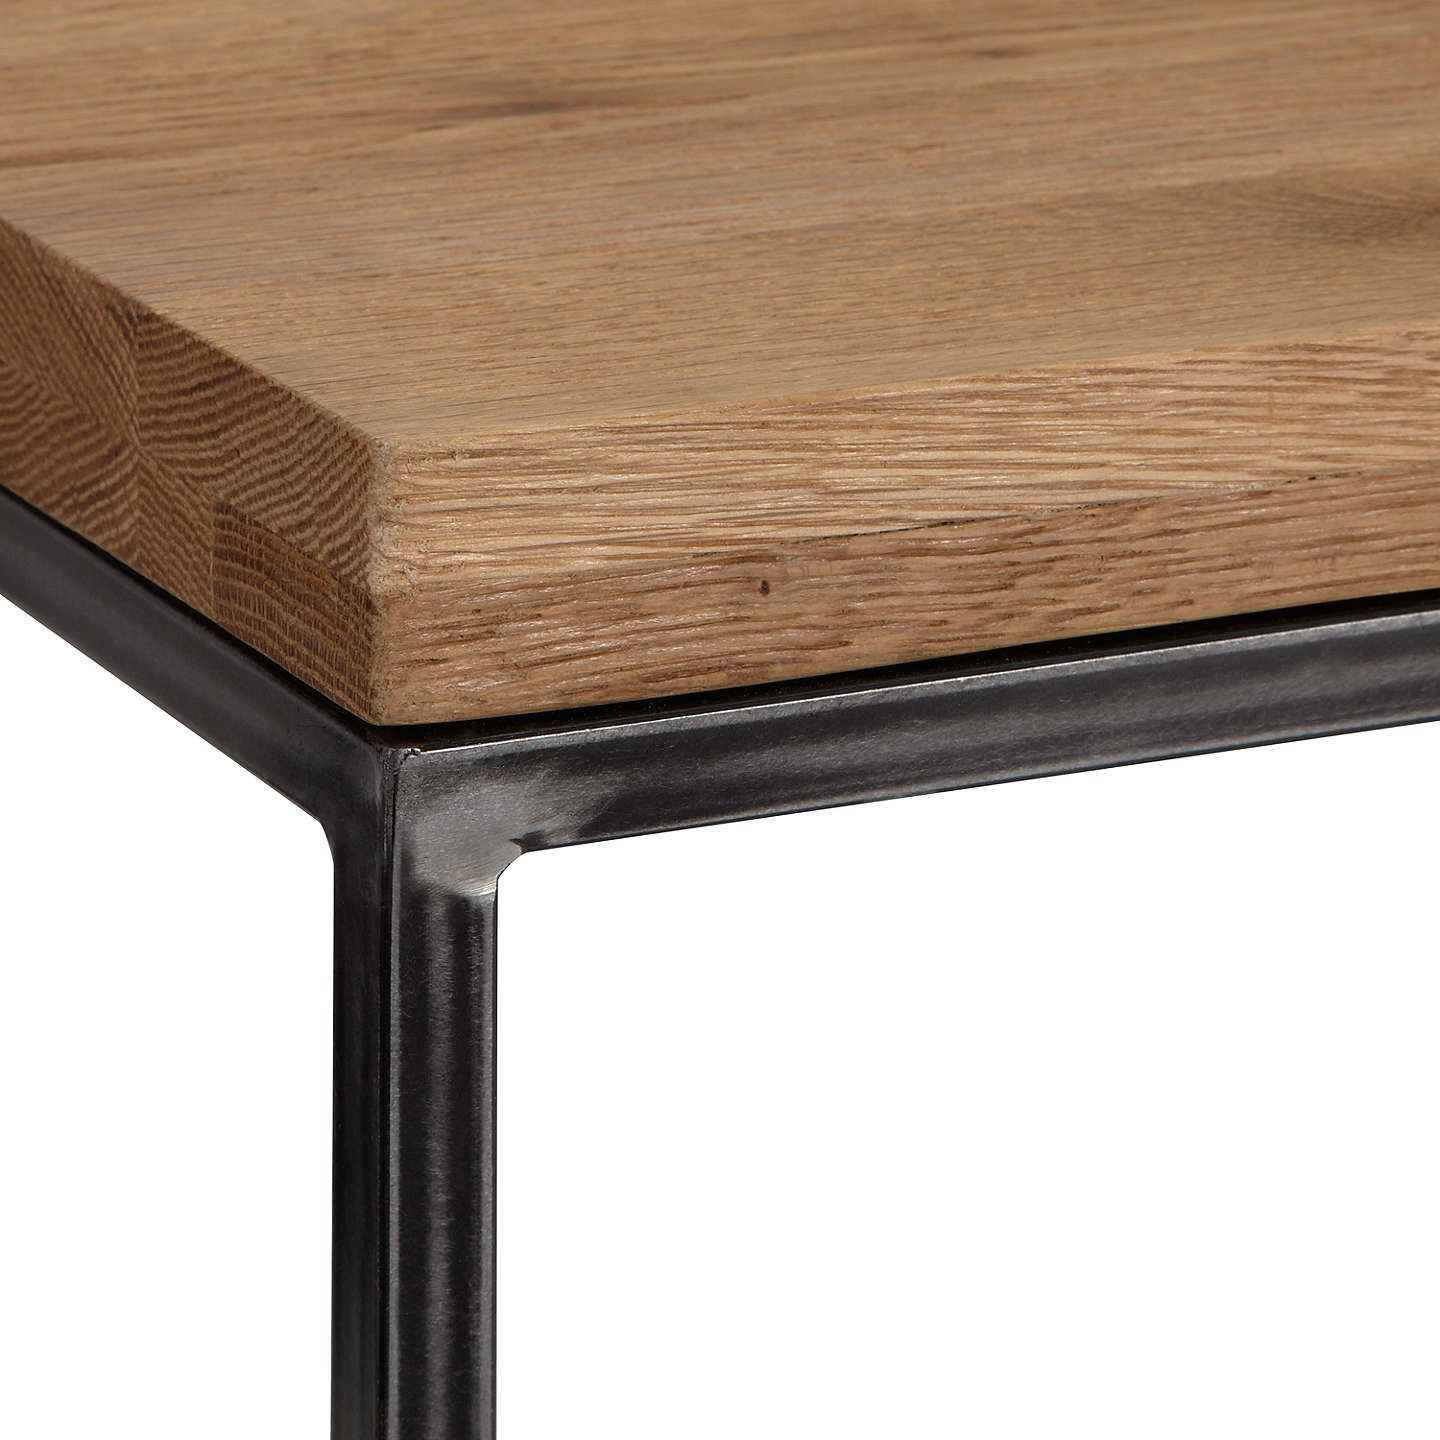 John Keal Expandable Slat Bench / Table SOLD at City Issue